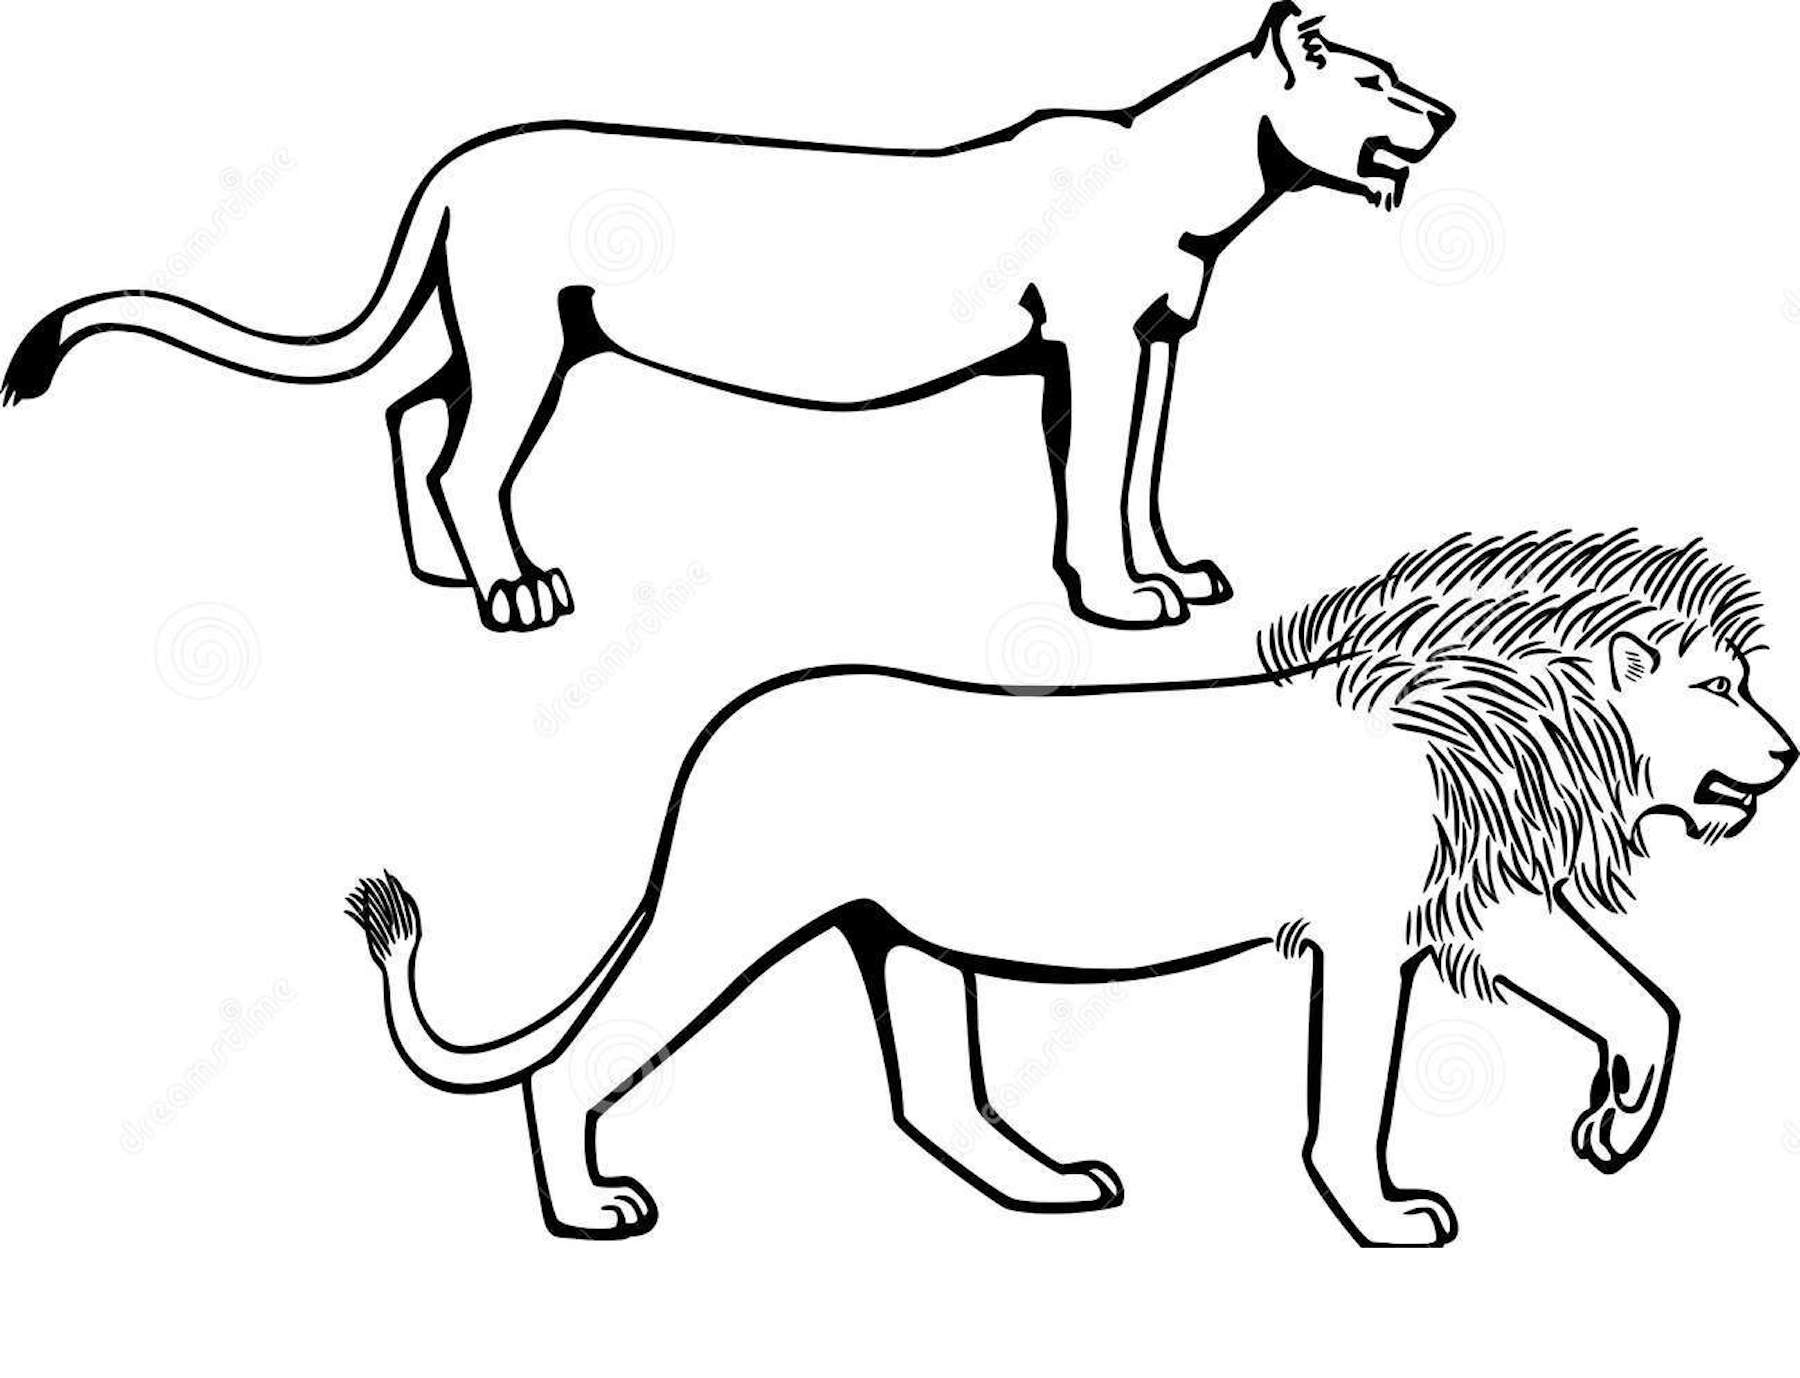 Lion Coloring Pages, Clipart, And Other Free Printable